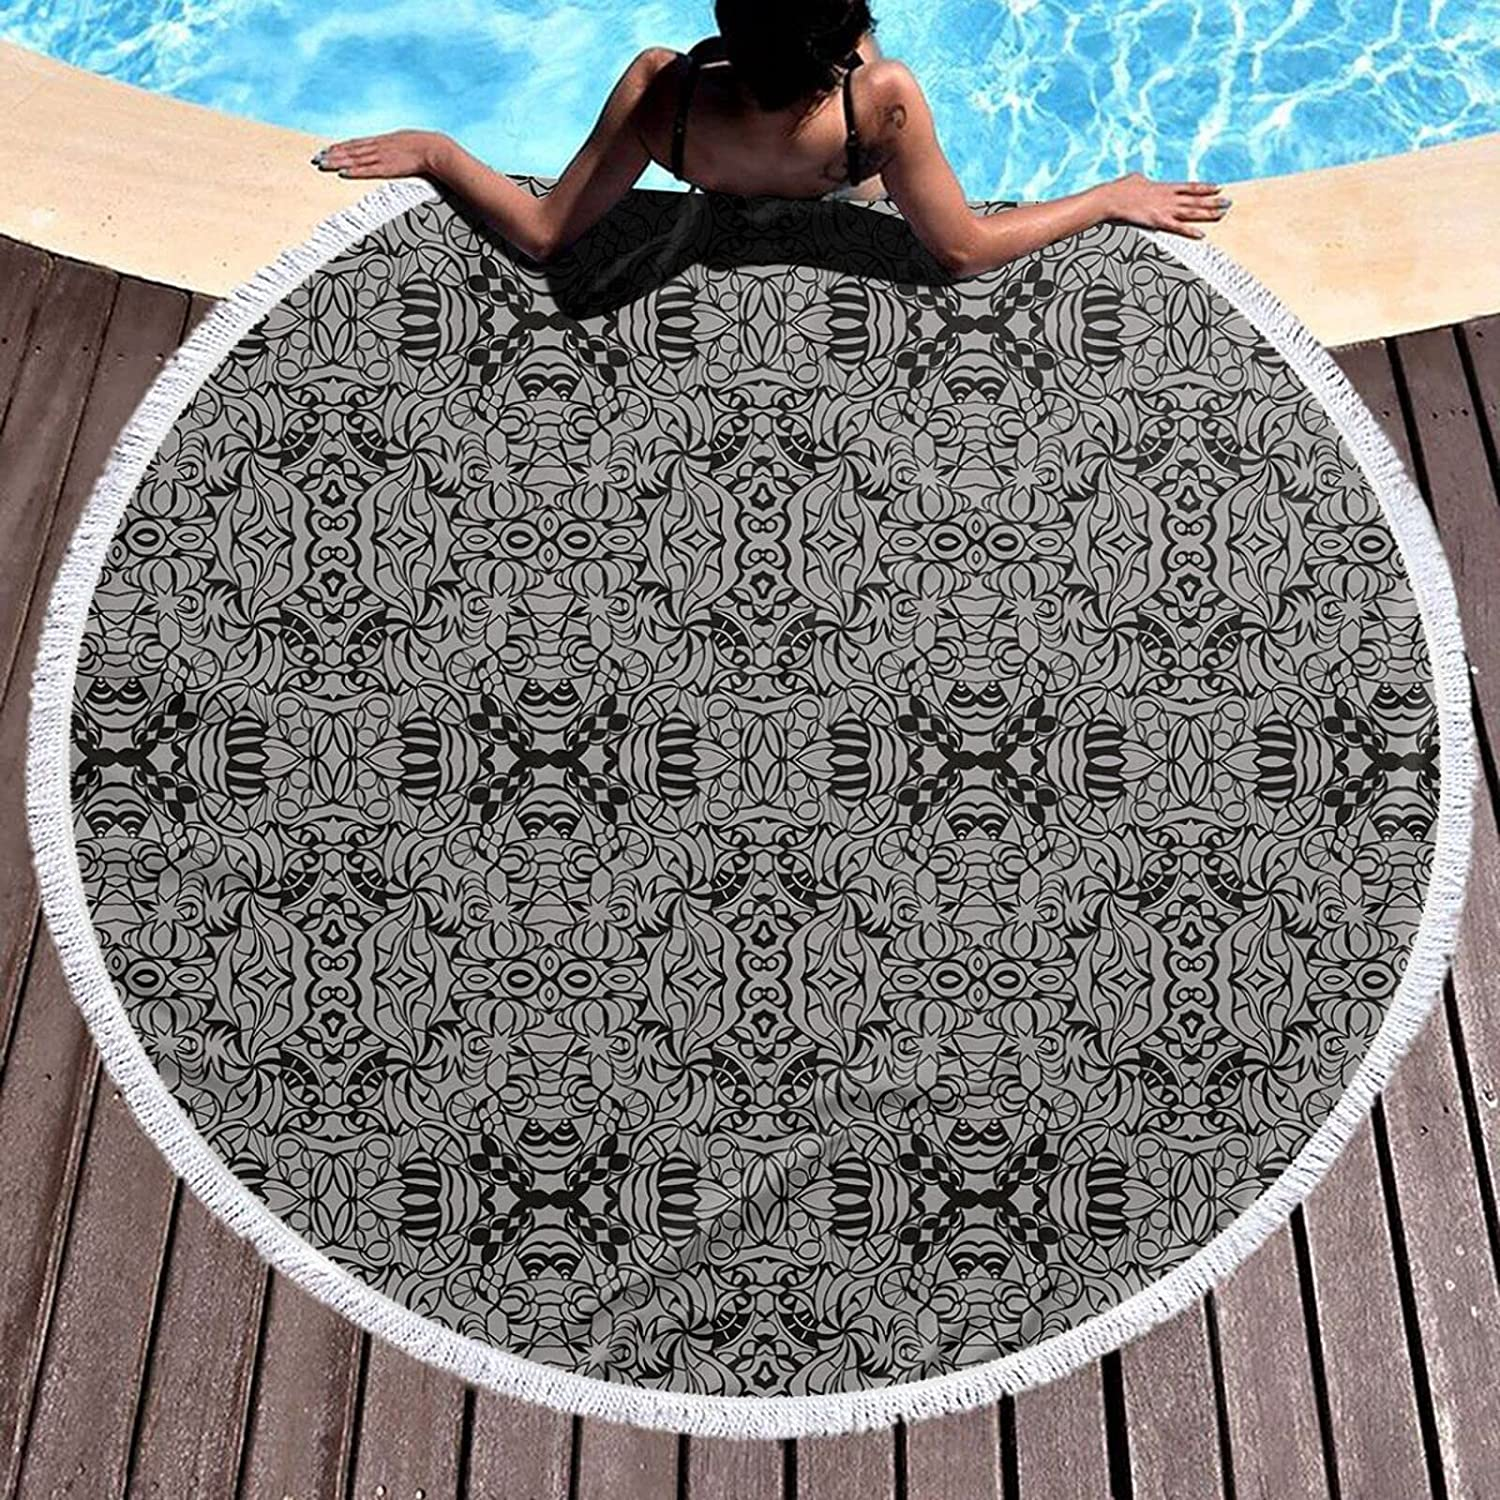 59 Limited price Inch Round Beach Towel Phoenix Mall Oversized T Party Pool Sand Rave